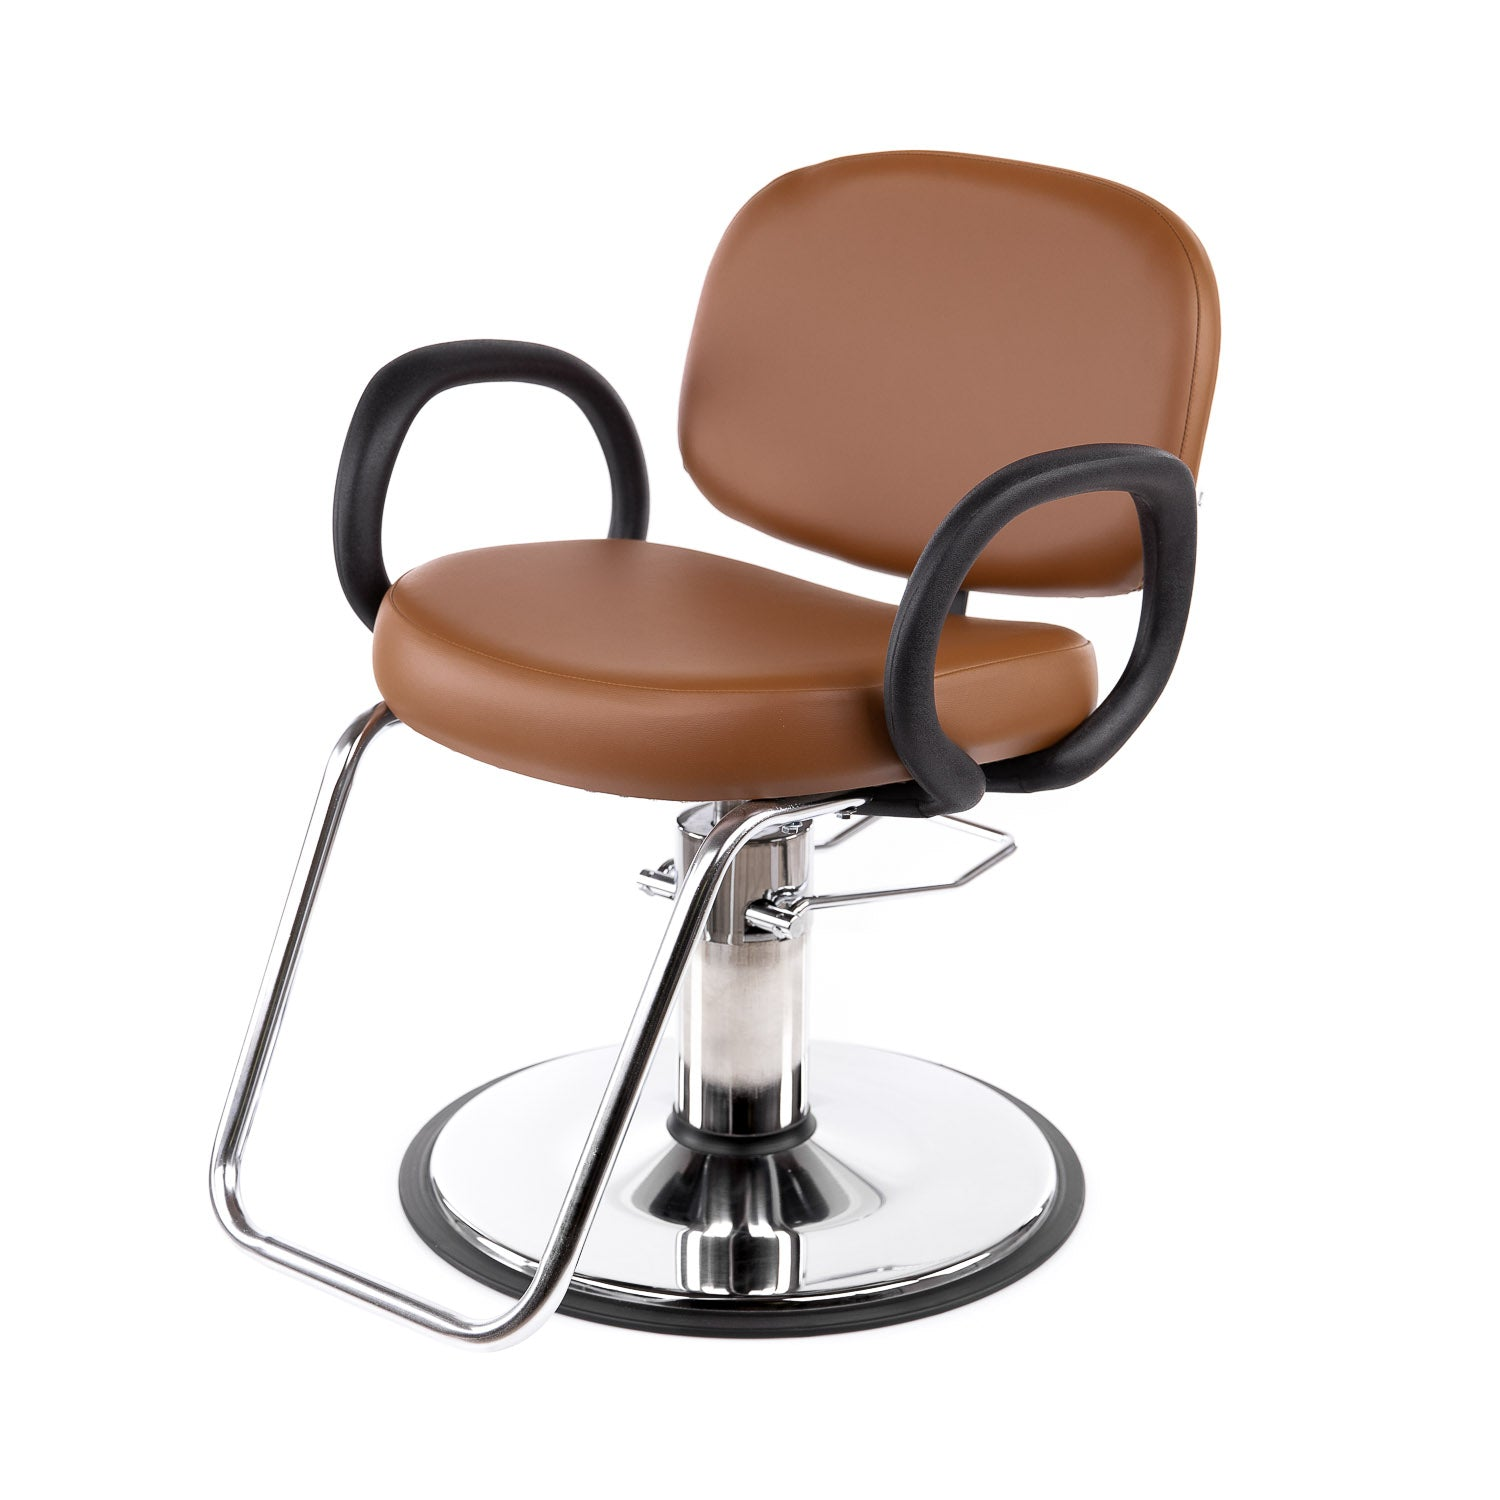 Kiva Styling Chair